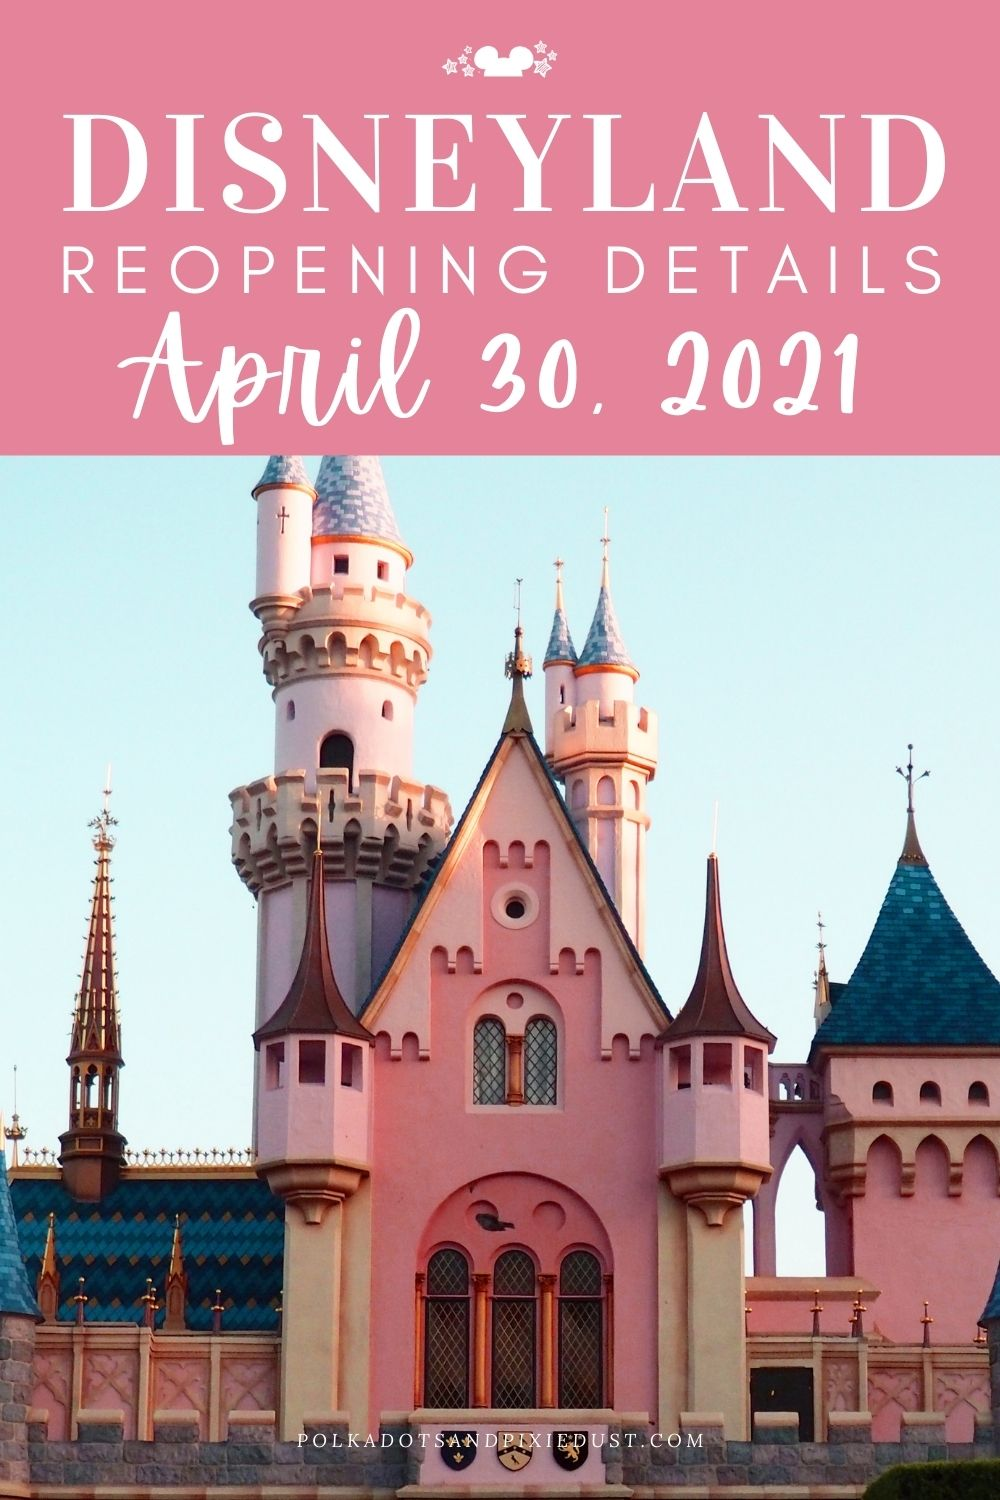 Disneyland ReOpening in 2021 Details, Mask Requirements, Capacity and What is Open? #polkadotpixies #disneyland